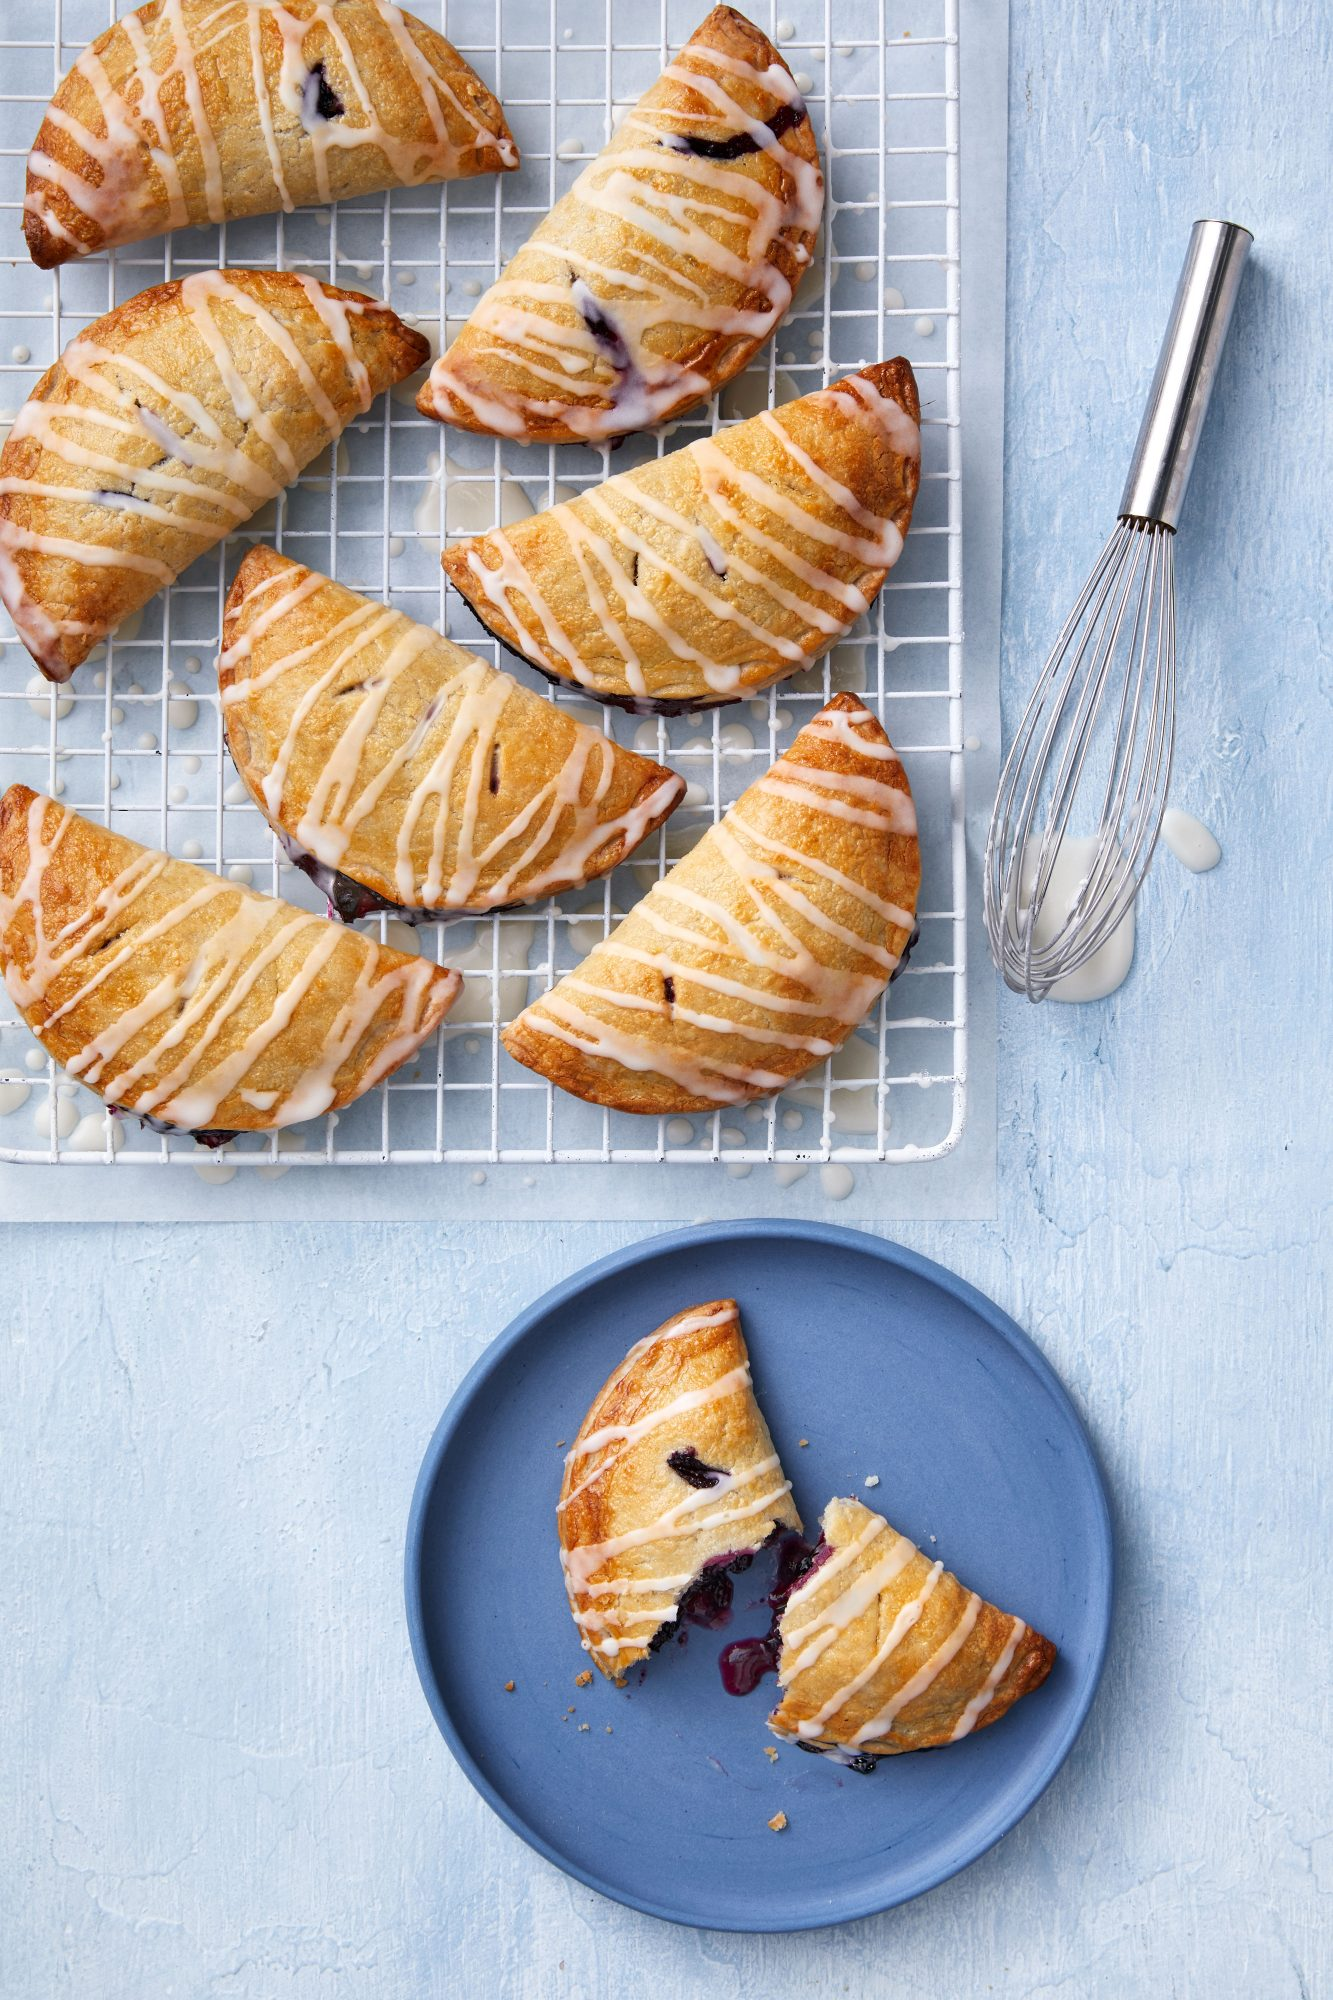 Blueberry-Lavender Hand Pies